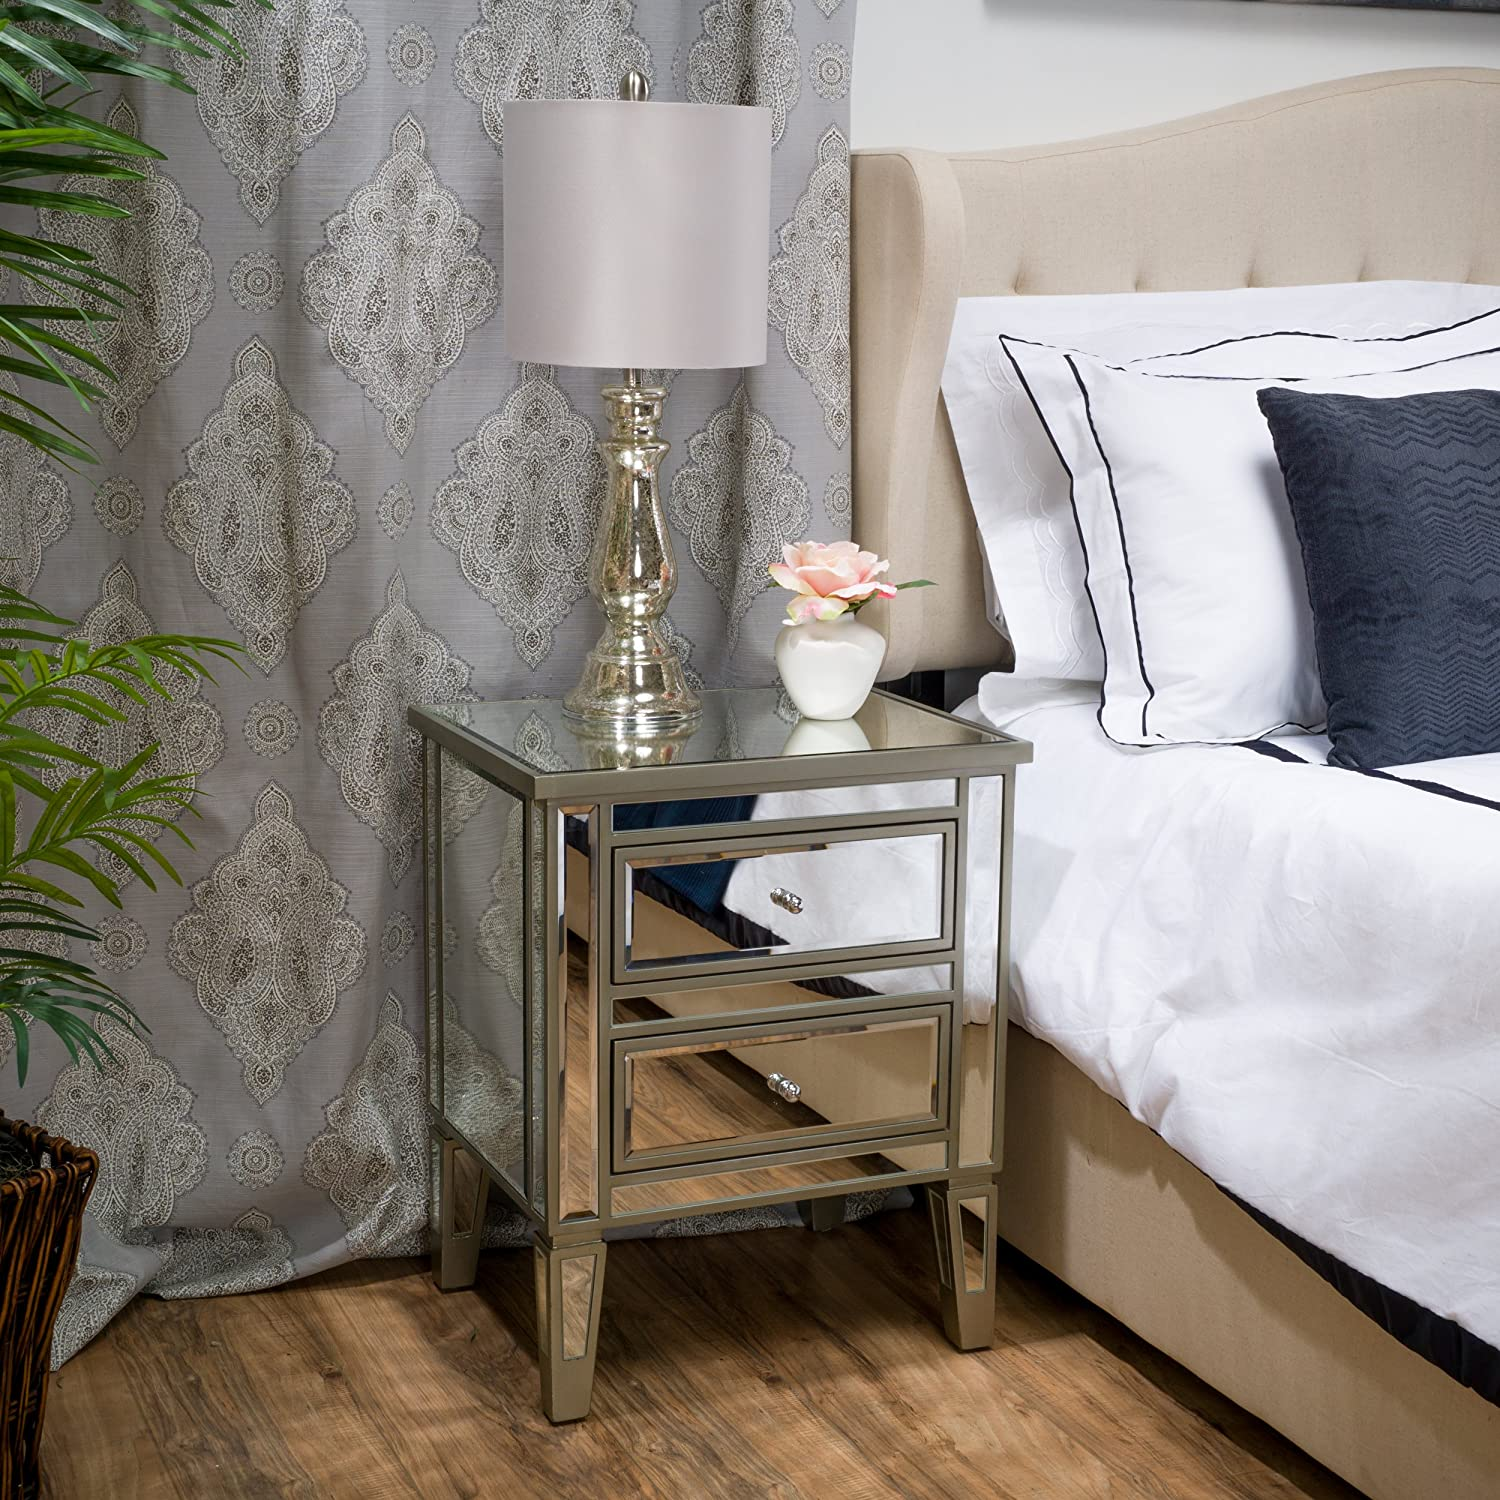 Best Selling A Crafted Mirrored Nightstand Vintage Styling, Standard